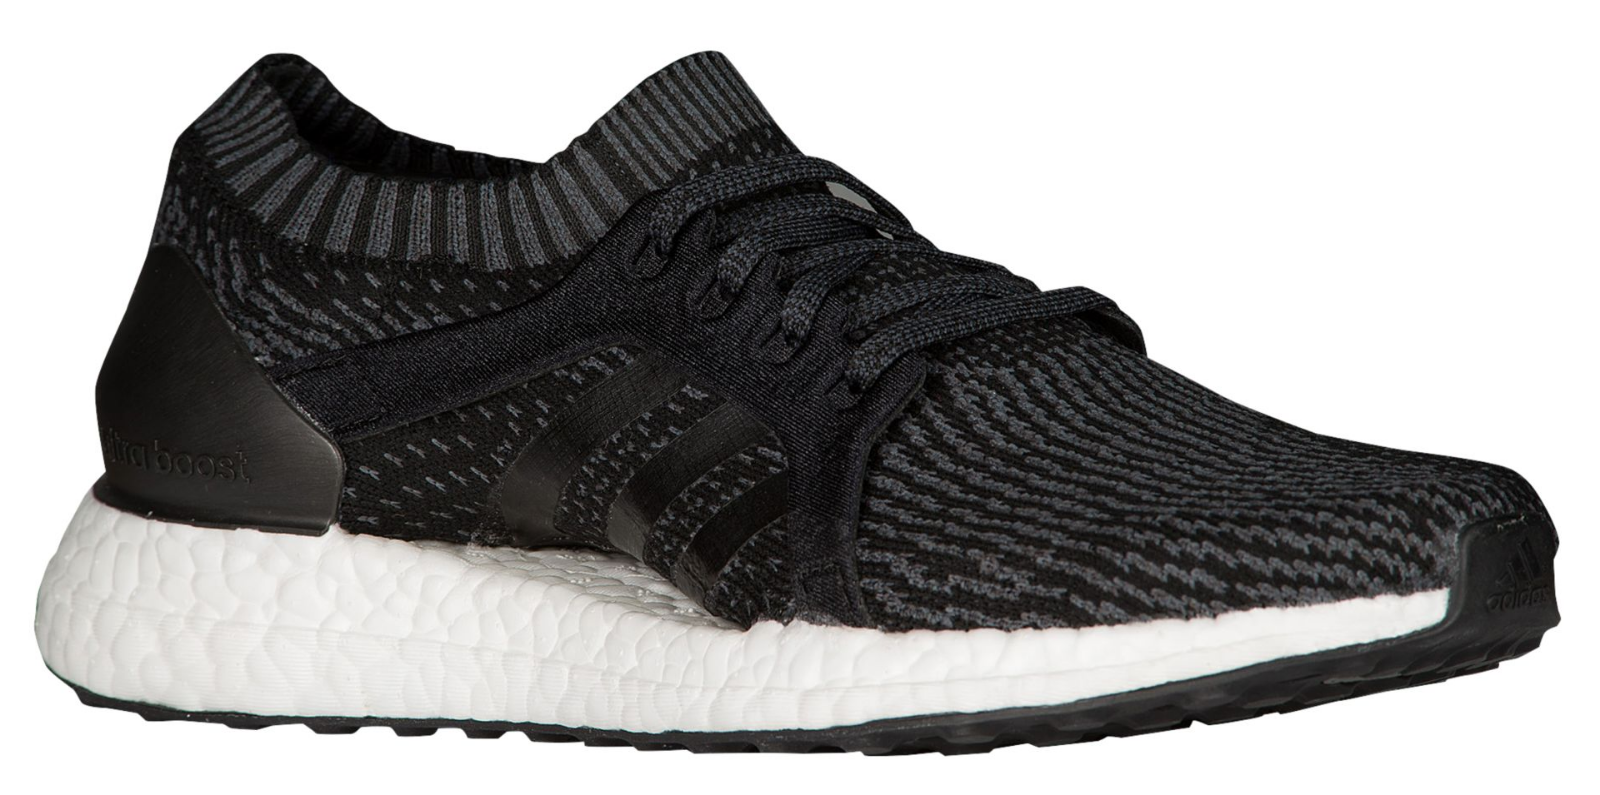 Adidas ULTRABOOST X Core Black Grey Onyx Running Discount (642) Women's shoes